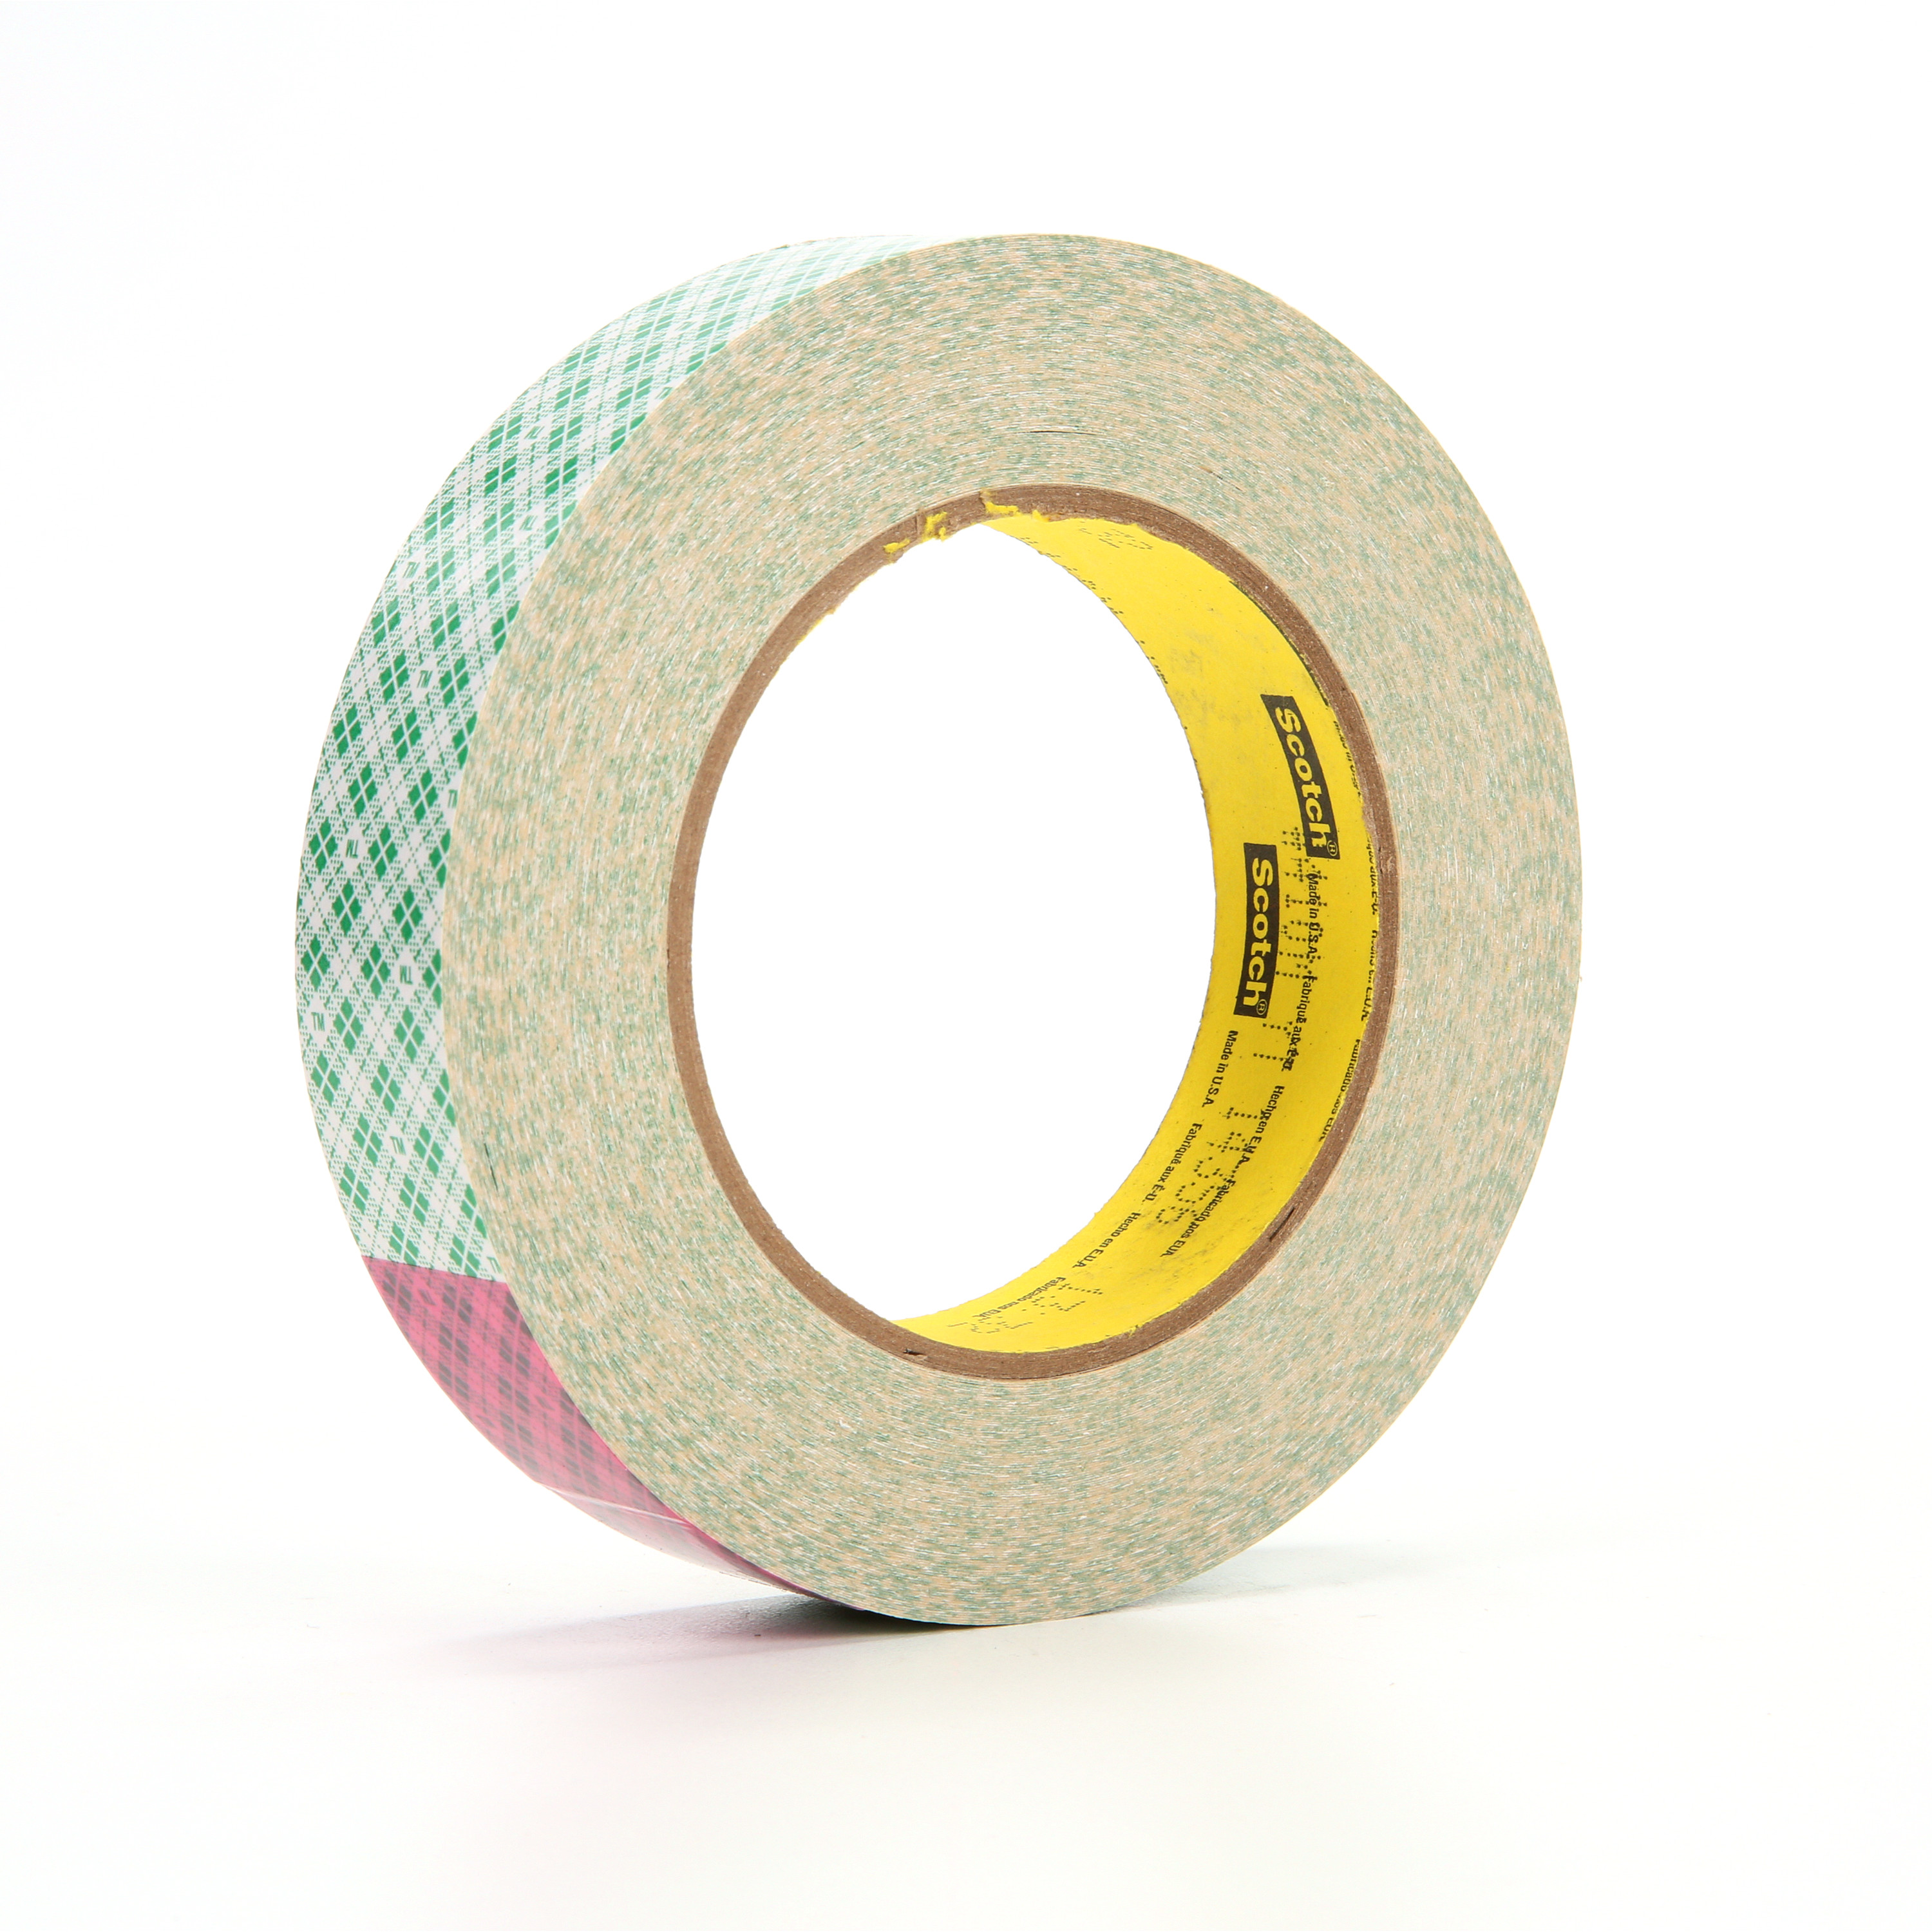 3M™ Double Coated Paper Tape 410M, Natural, 1 in x 36 yd, 5 mil, 36 rolls per case